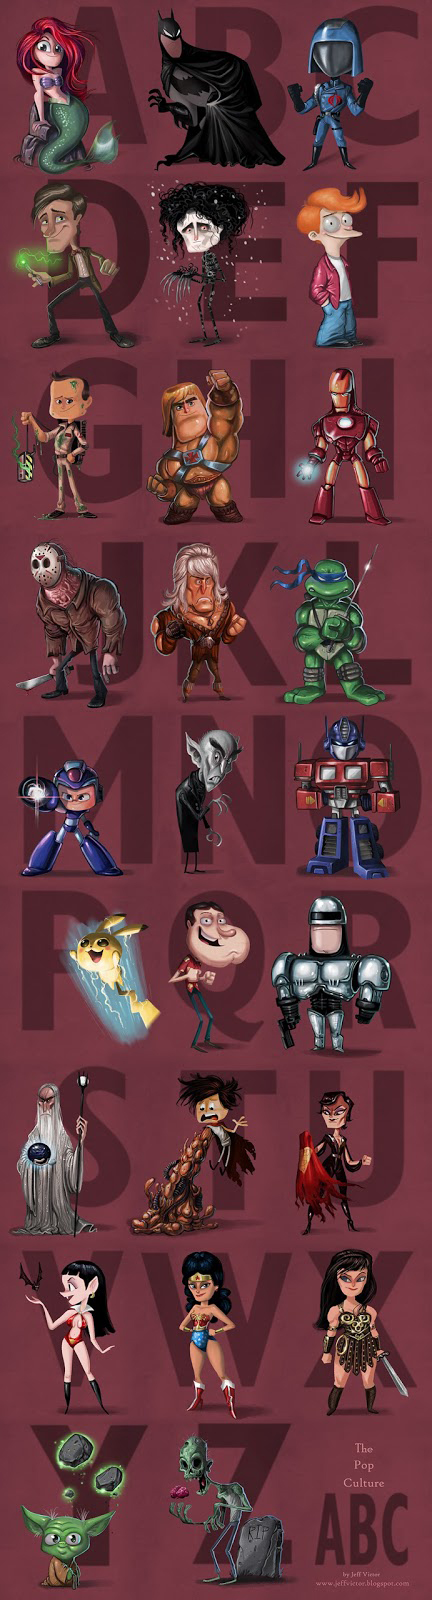 The Ultimate Pop Culture Alphabet by Jeff Victor - Full alphabet